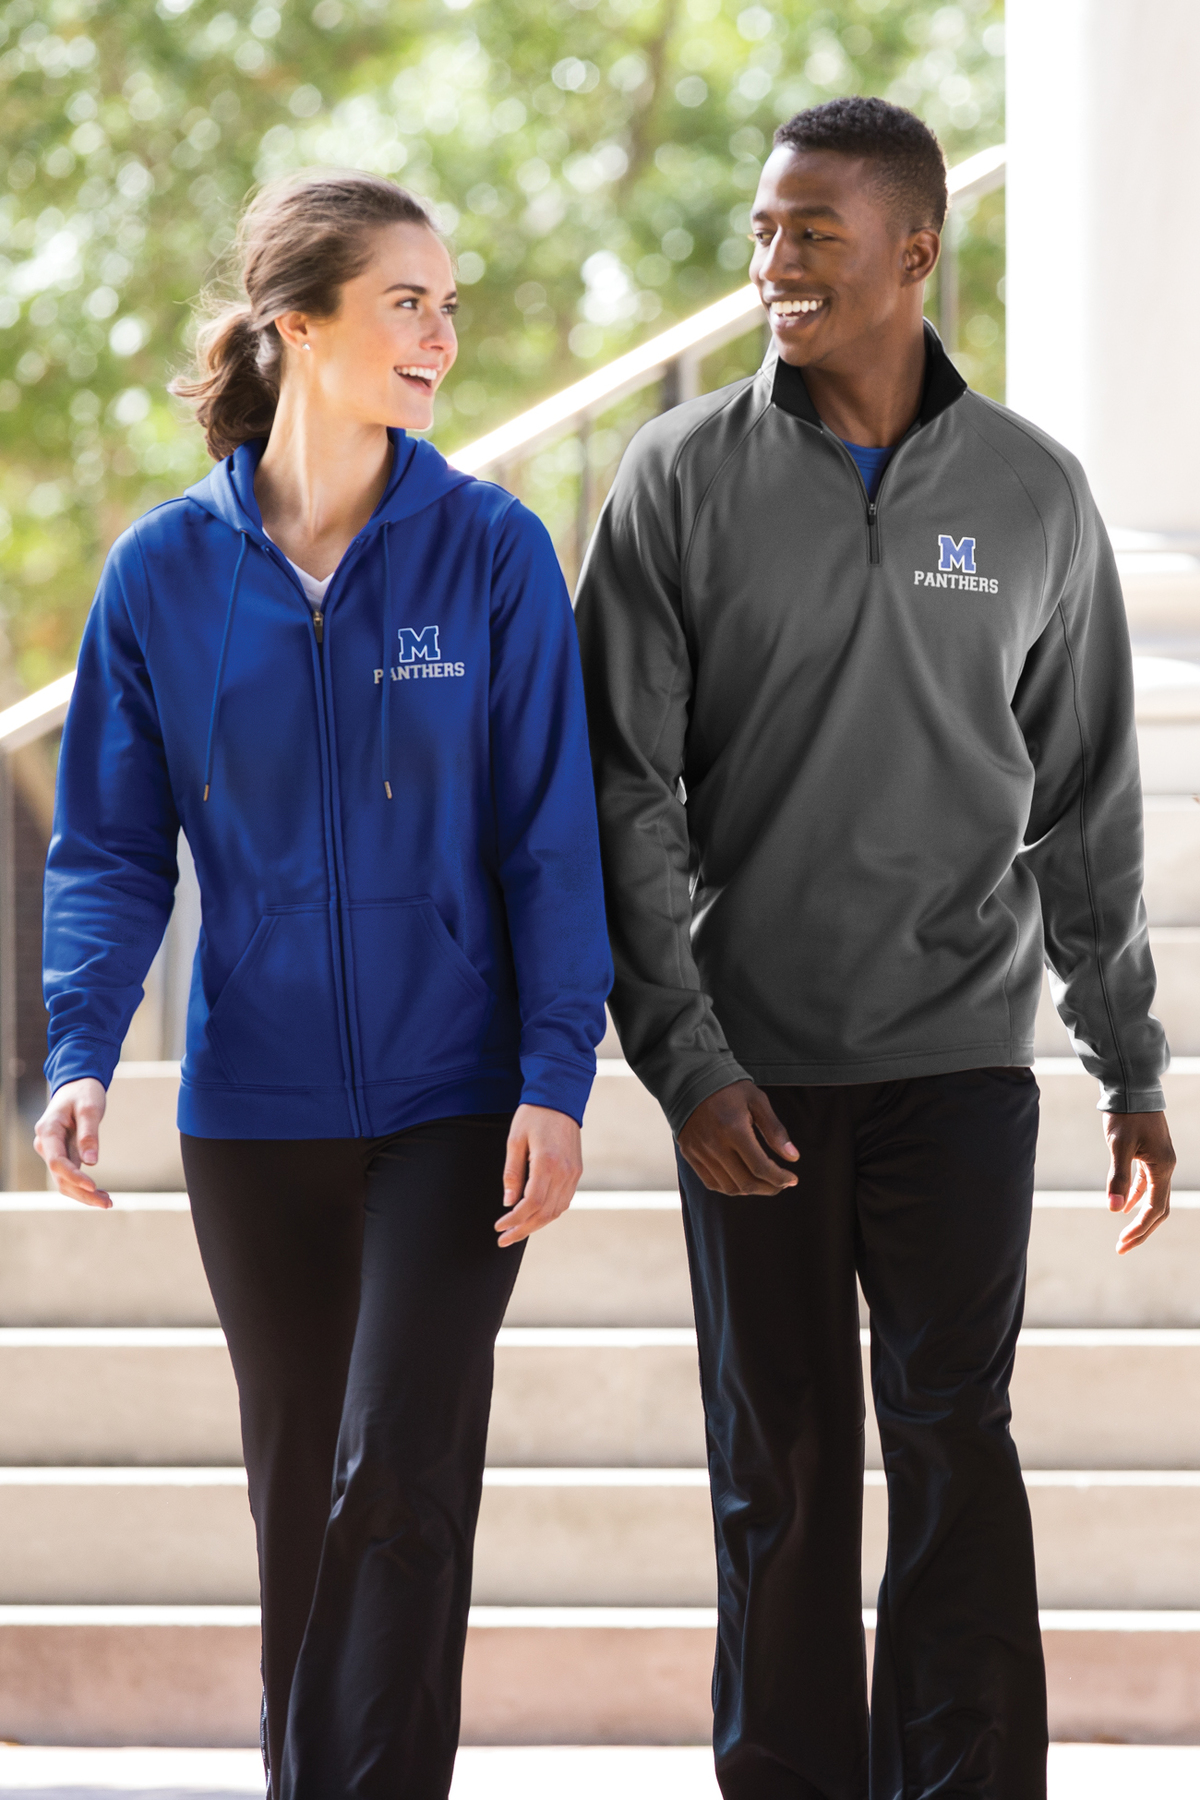 Sport Tek Sport Wick Fleece Full Zip Hooded Jacket Performance Sweatshirts Fleece Sport Tek Look sharp in affordable high performance apparel. sport tek sport wick fleece full zip